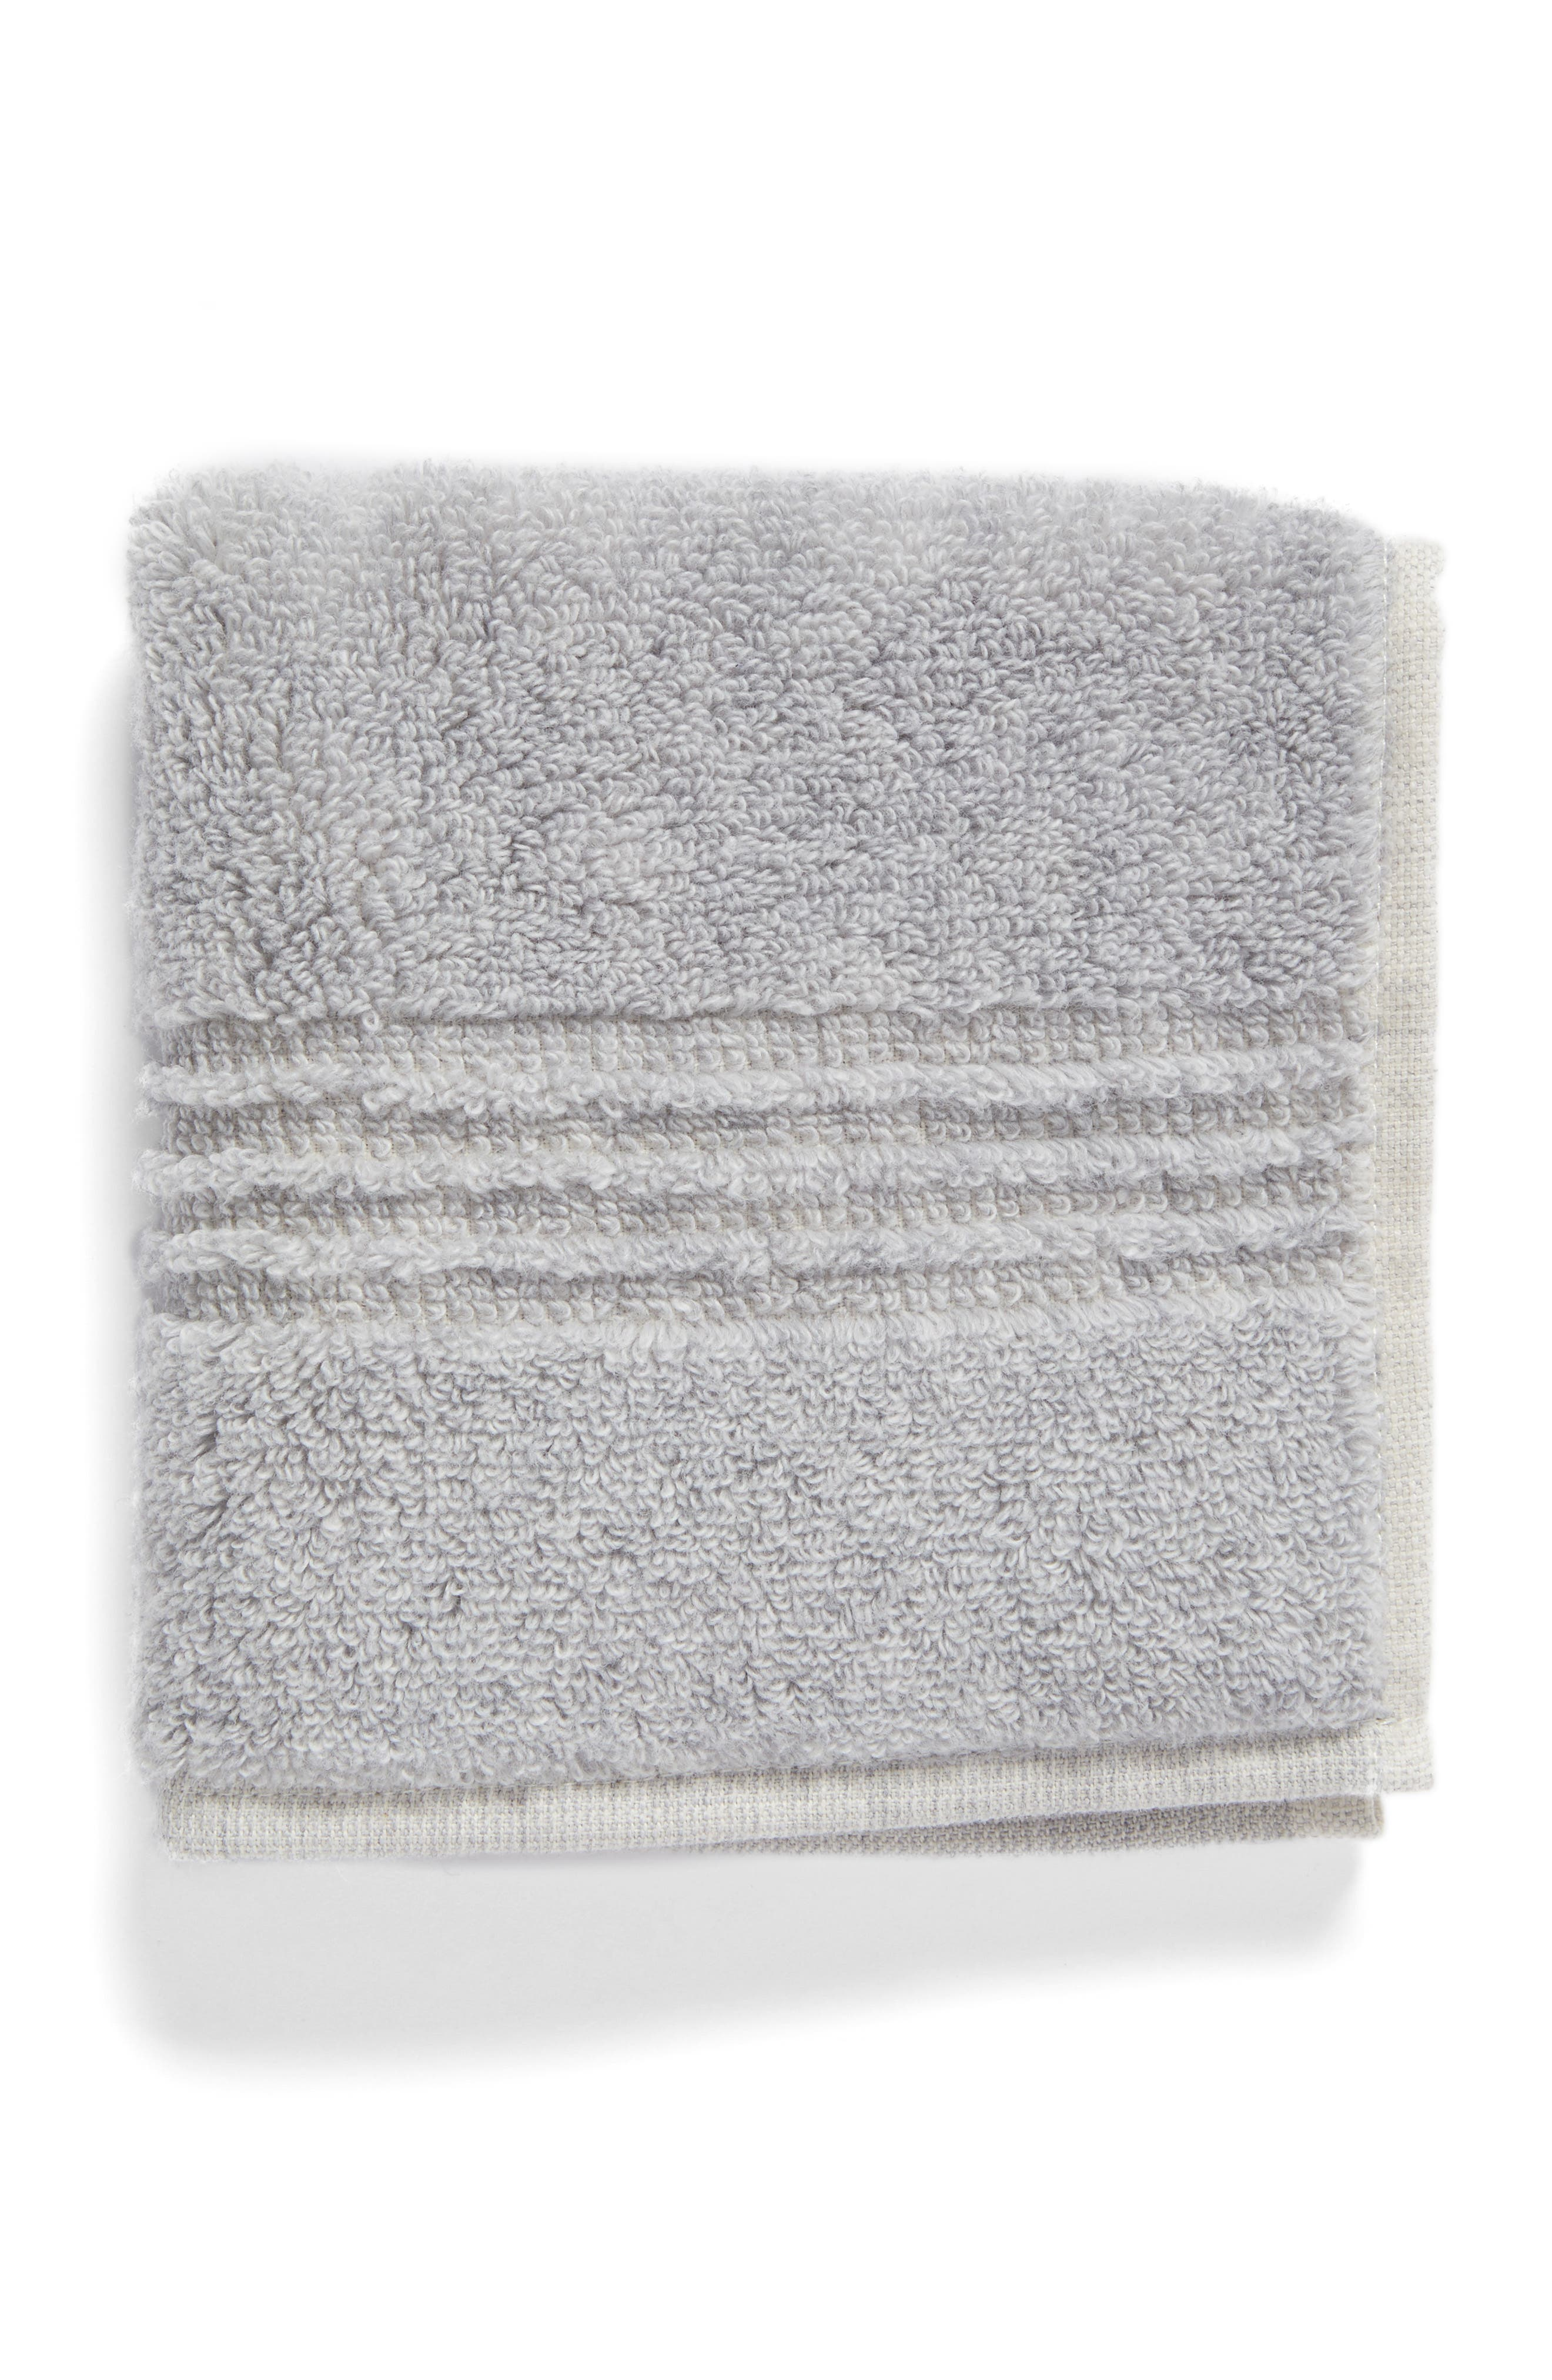 Nordstrom at Home Organic Hydrocotton Washcloth (2 for $17)